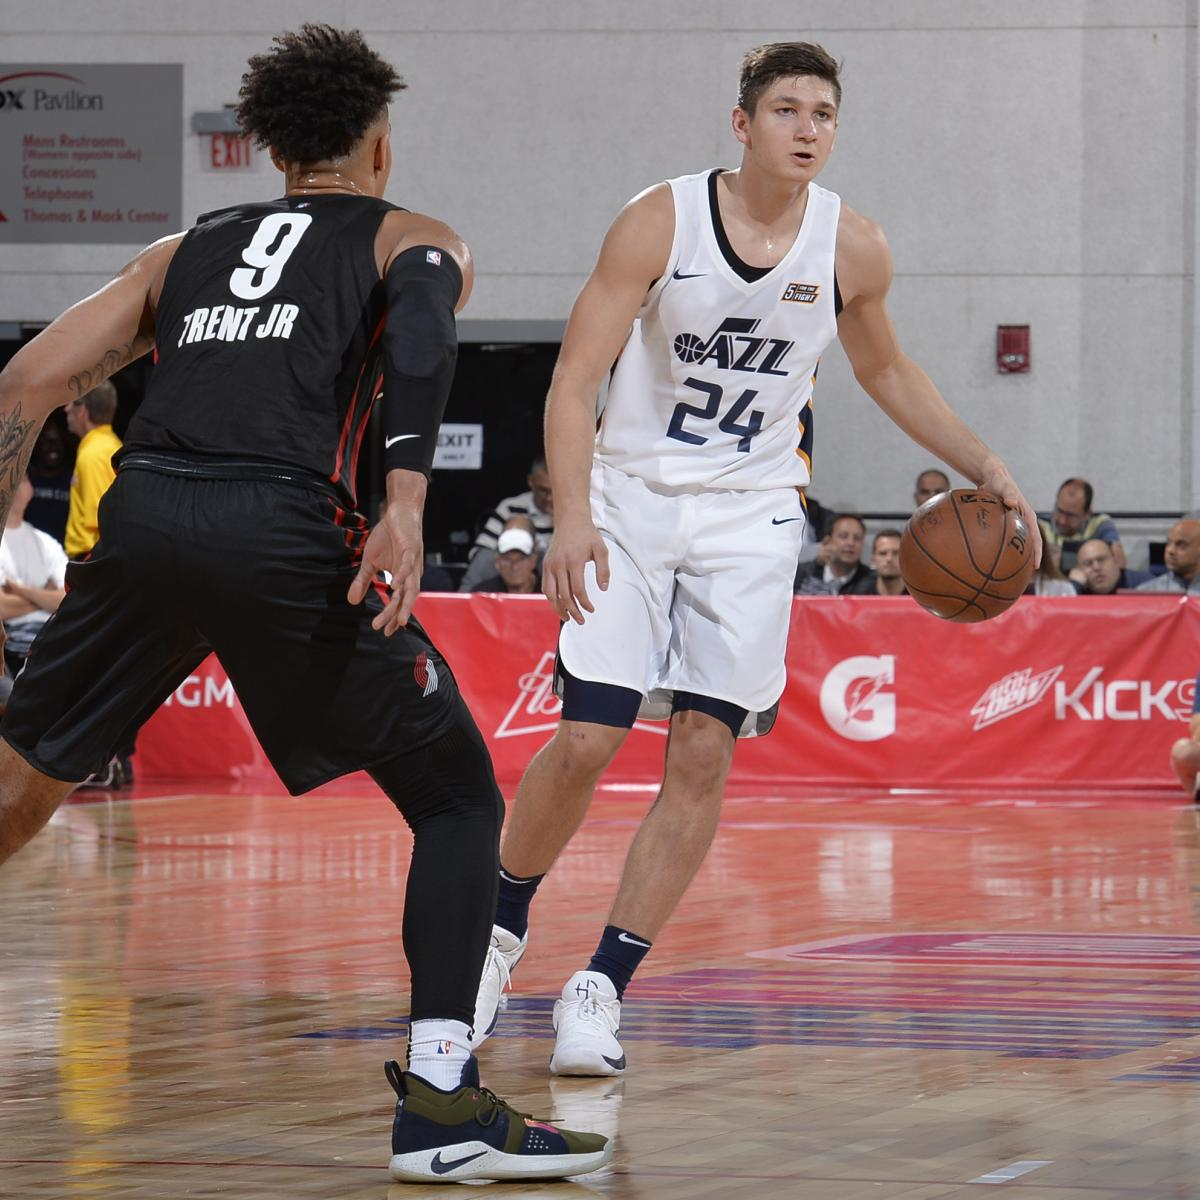 NBA Summer League 2018: Scores and Highlights from Saturday's Las Vegas Results